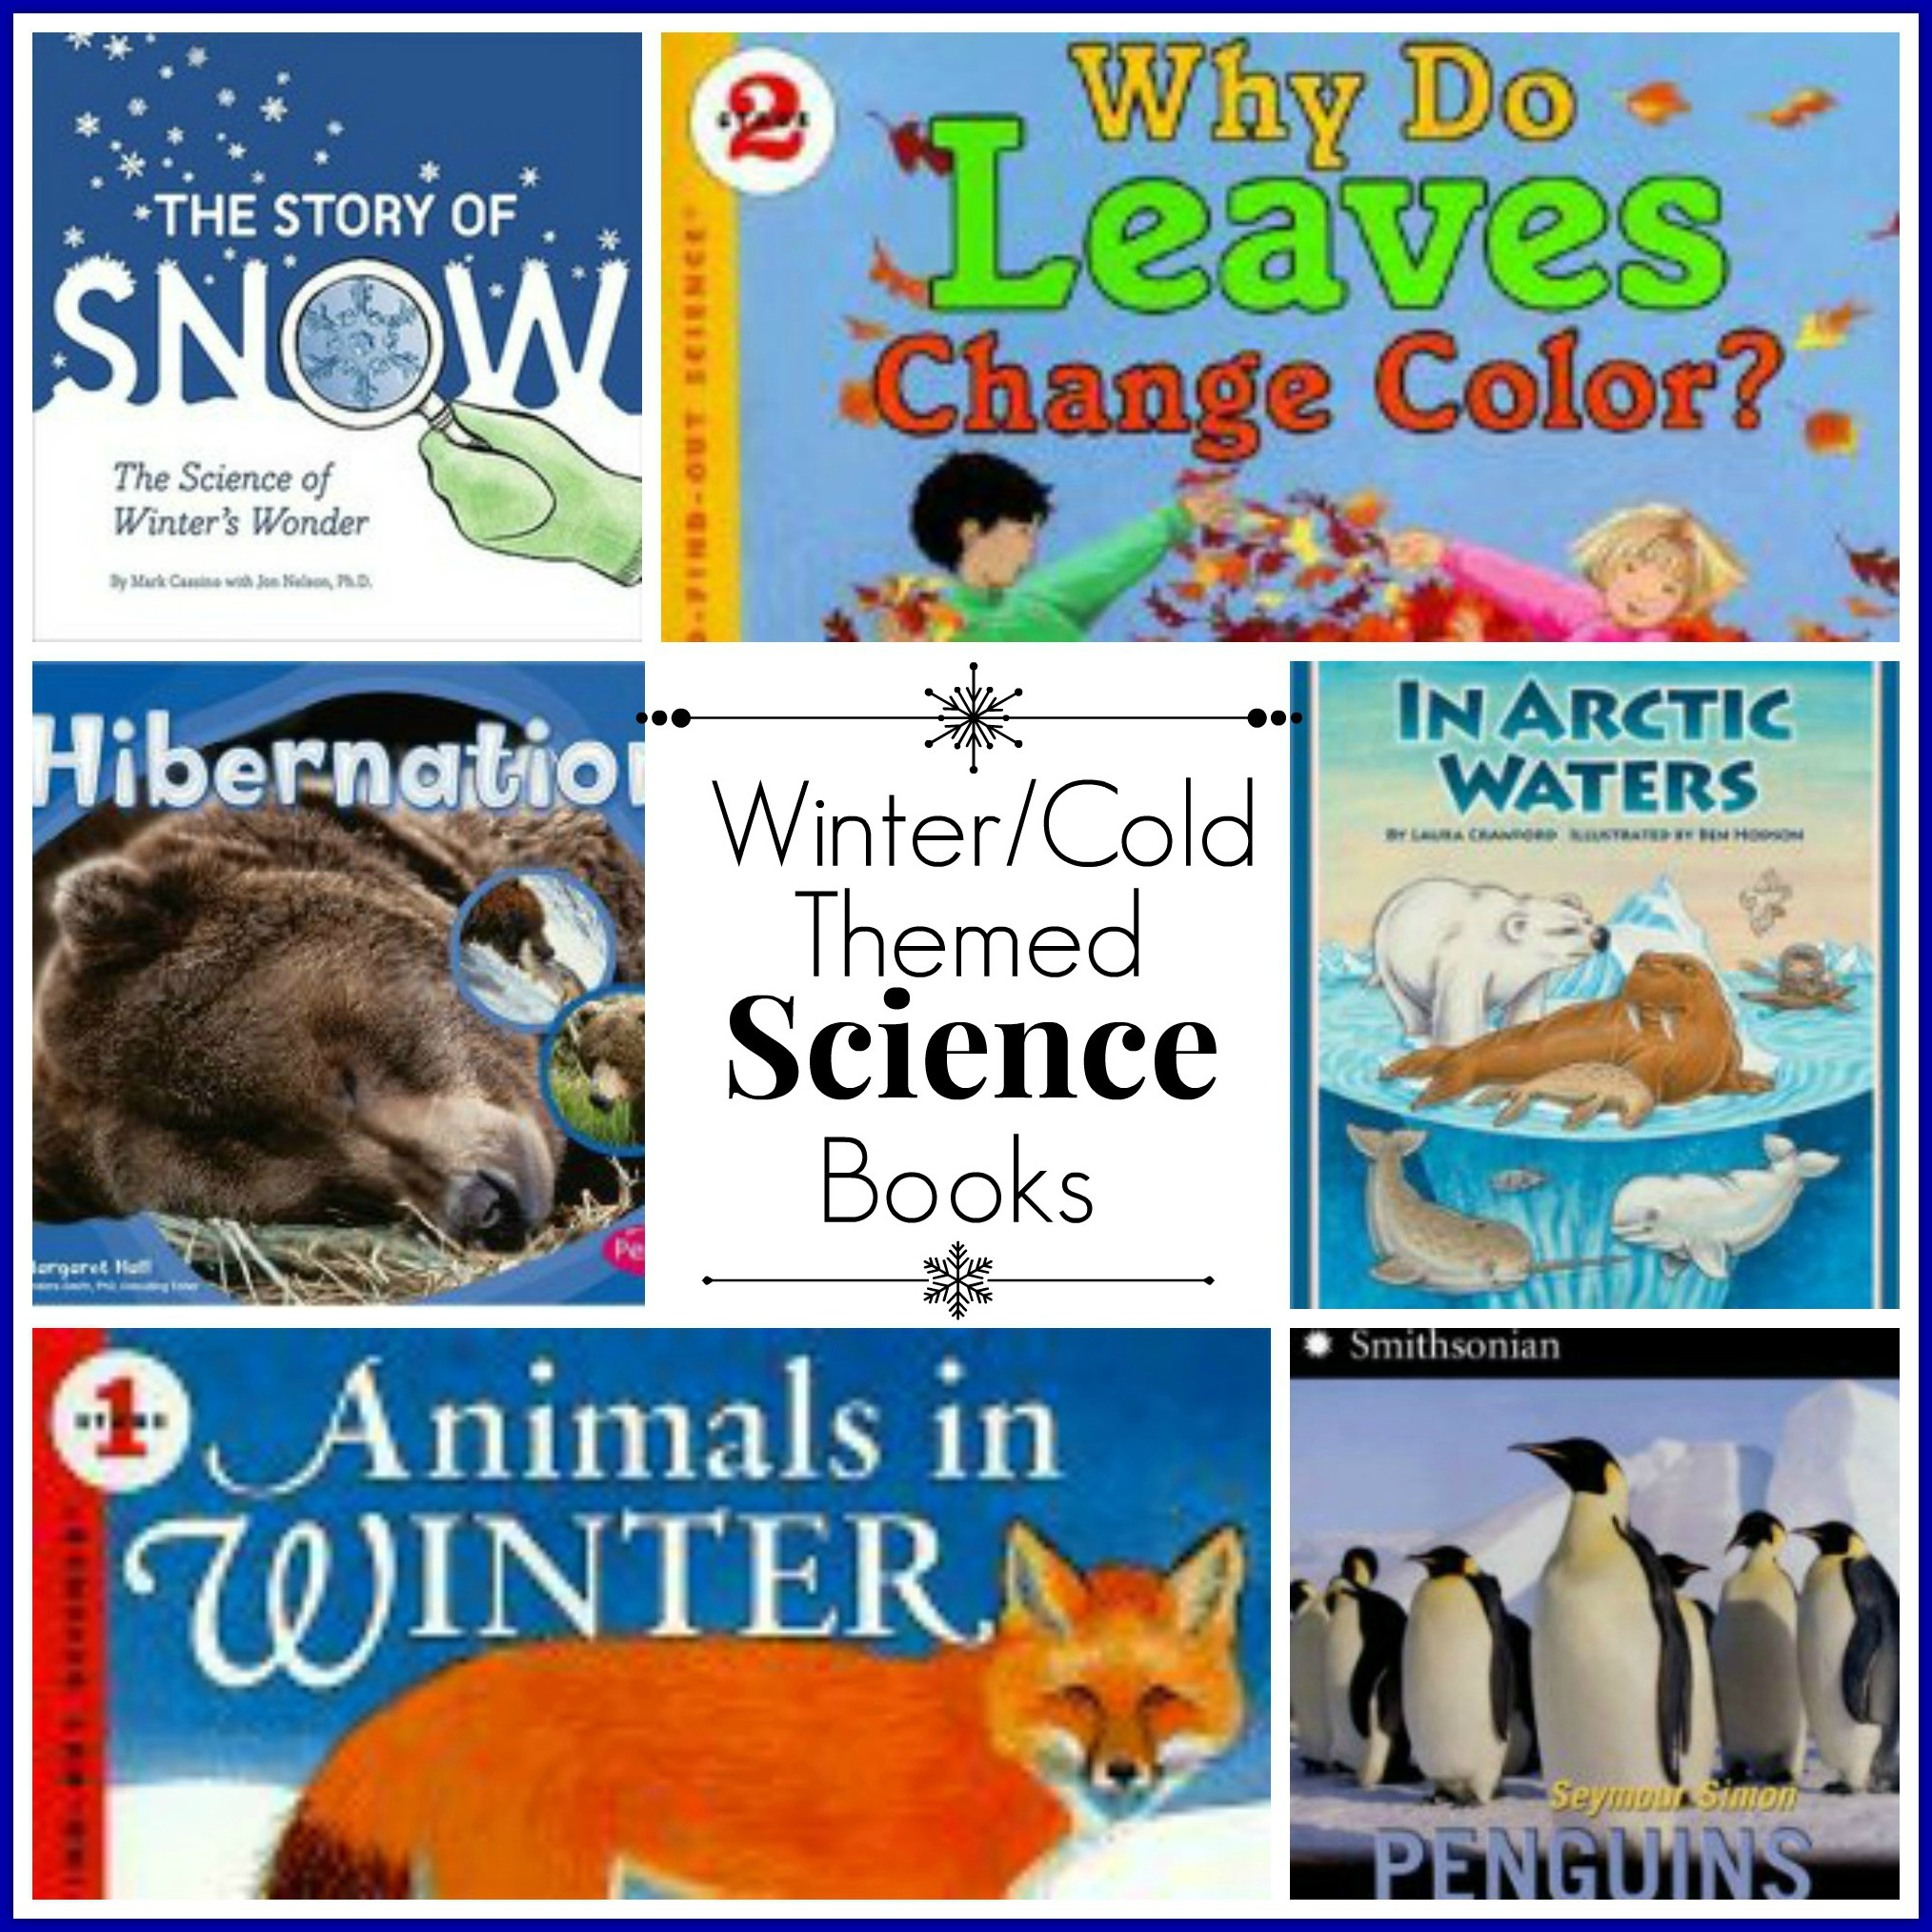 Winter/Cold Themed Science Books